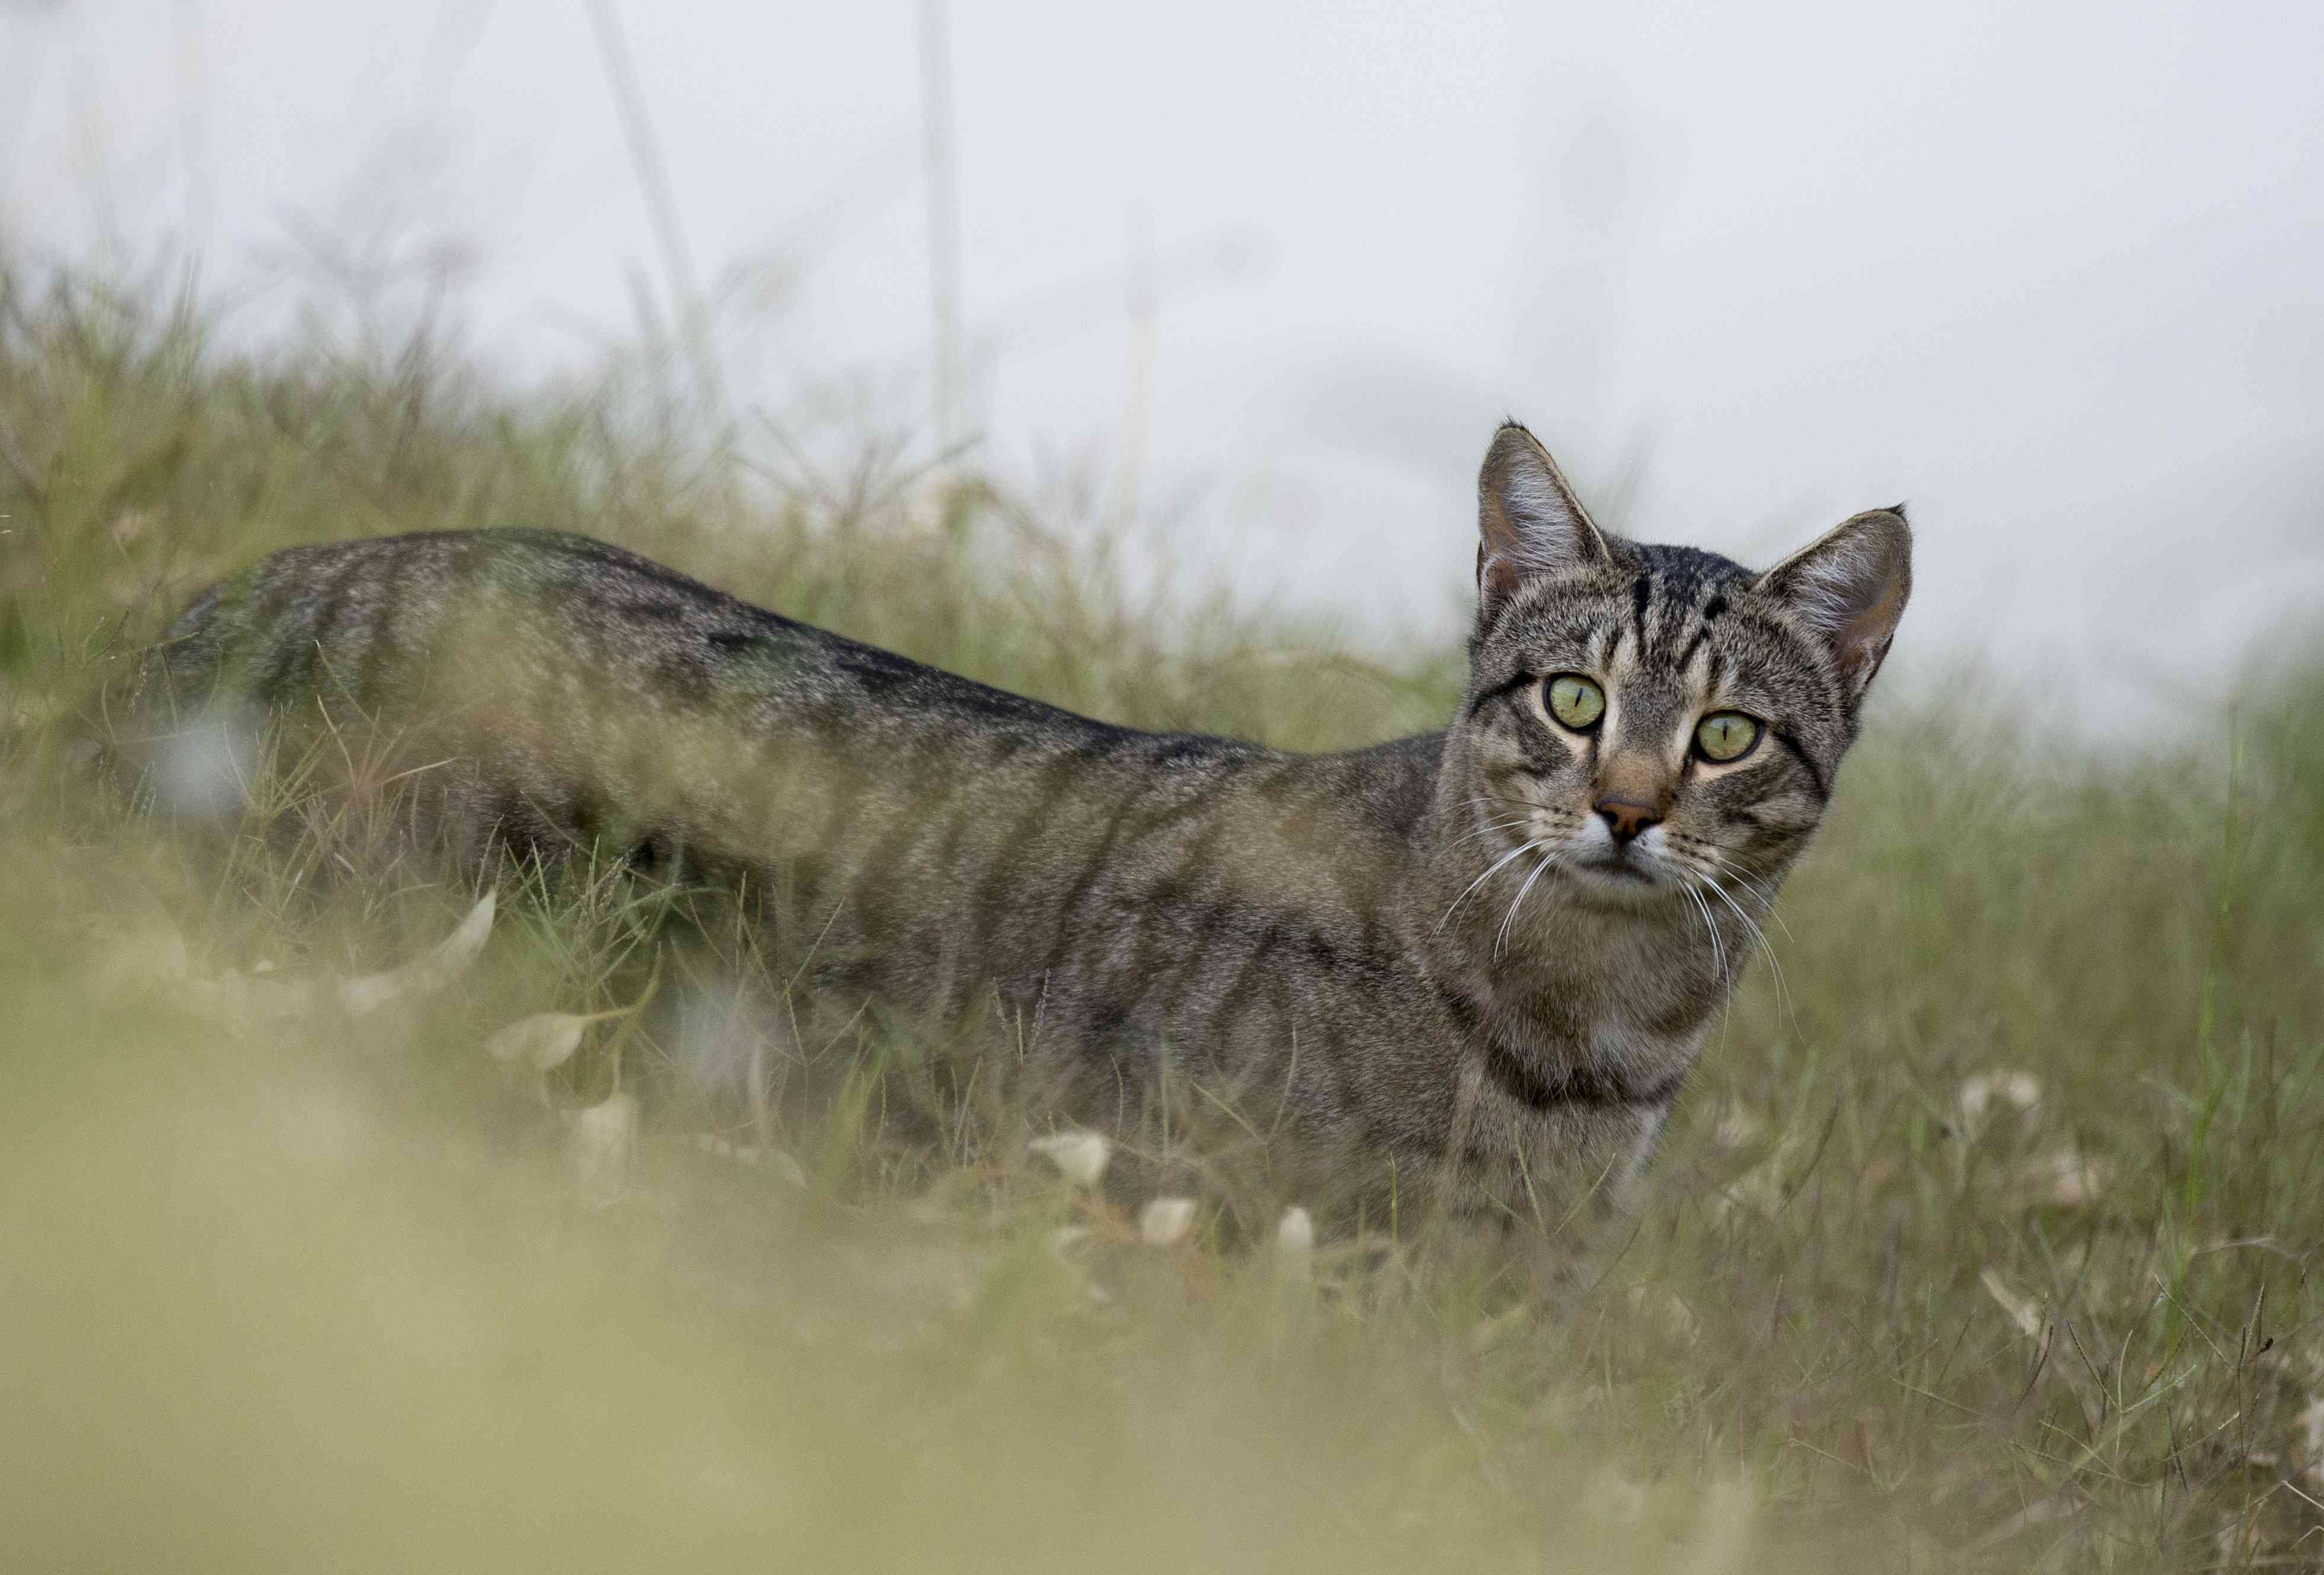 A feral cat on the banks of Cooper Creek, South Australia.